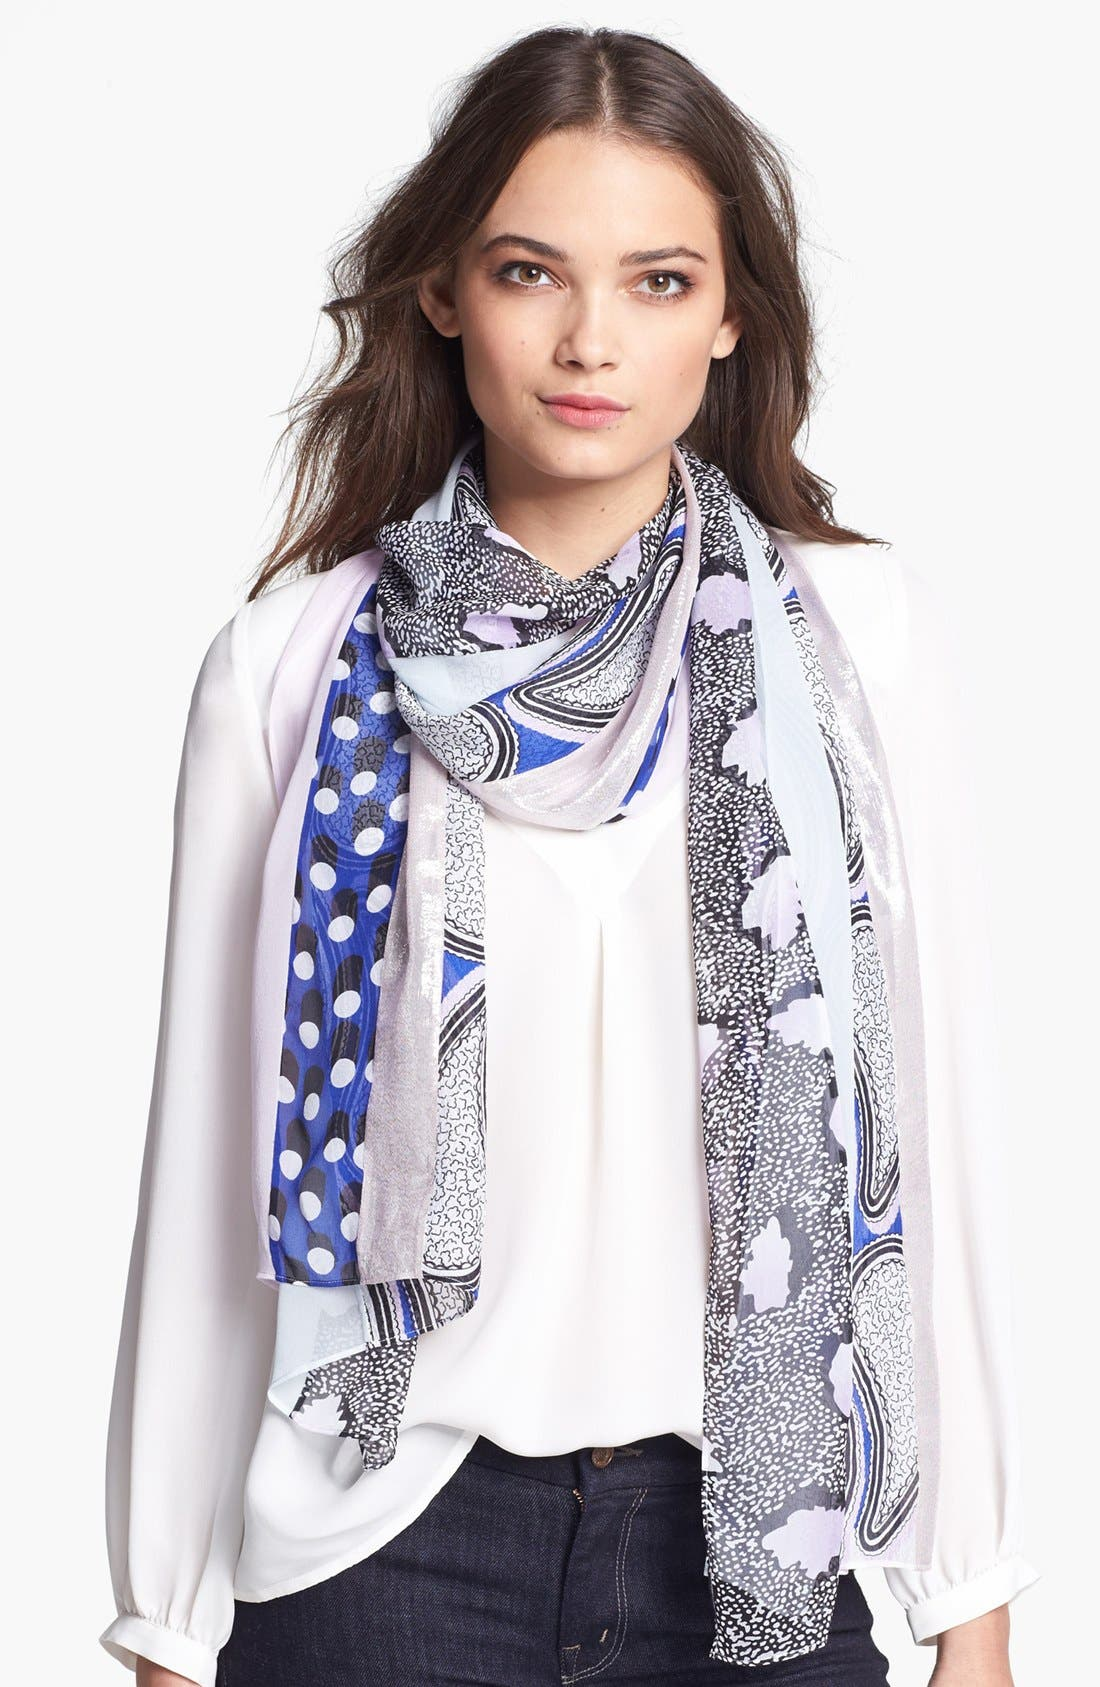 Alternate Image 1 Selected - Diane von Furstenberg 'Boomerang' Silk Scarf